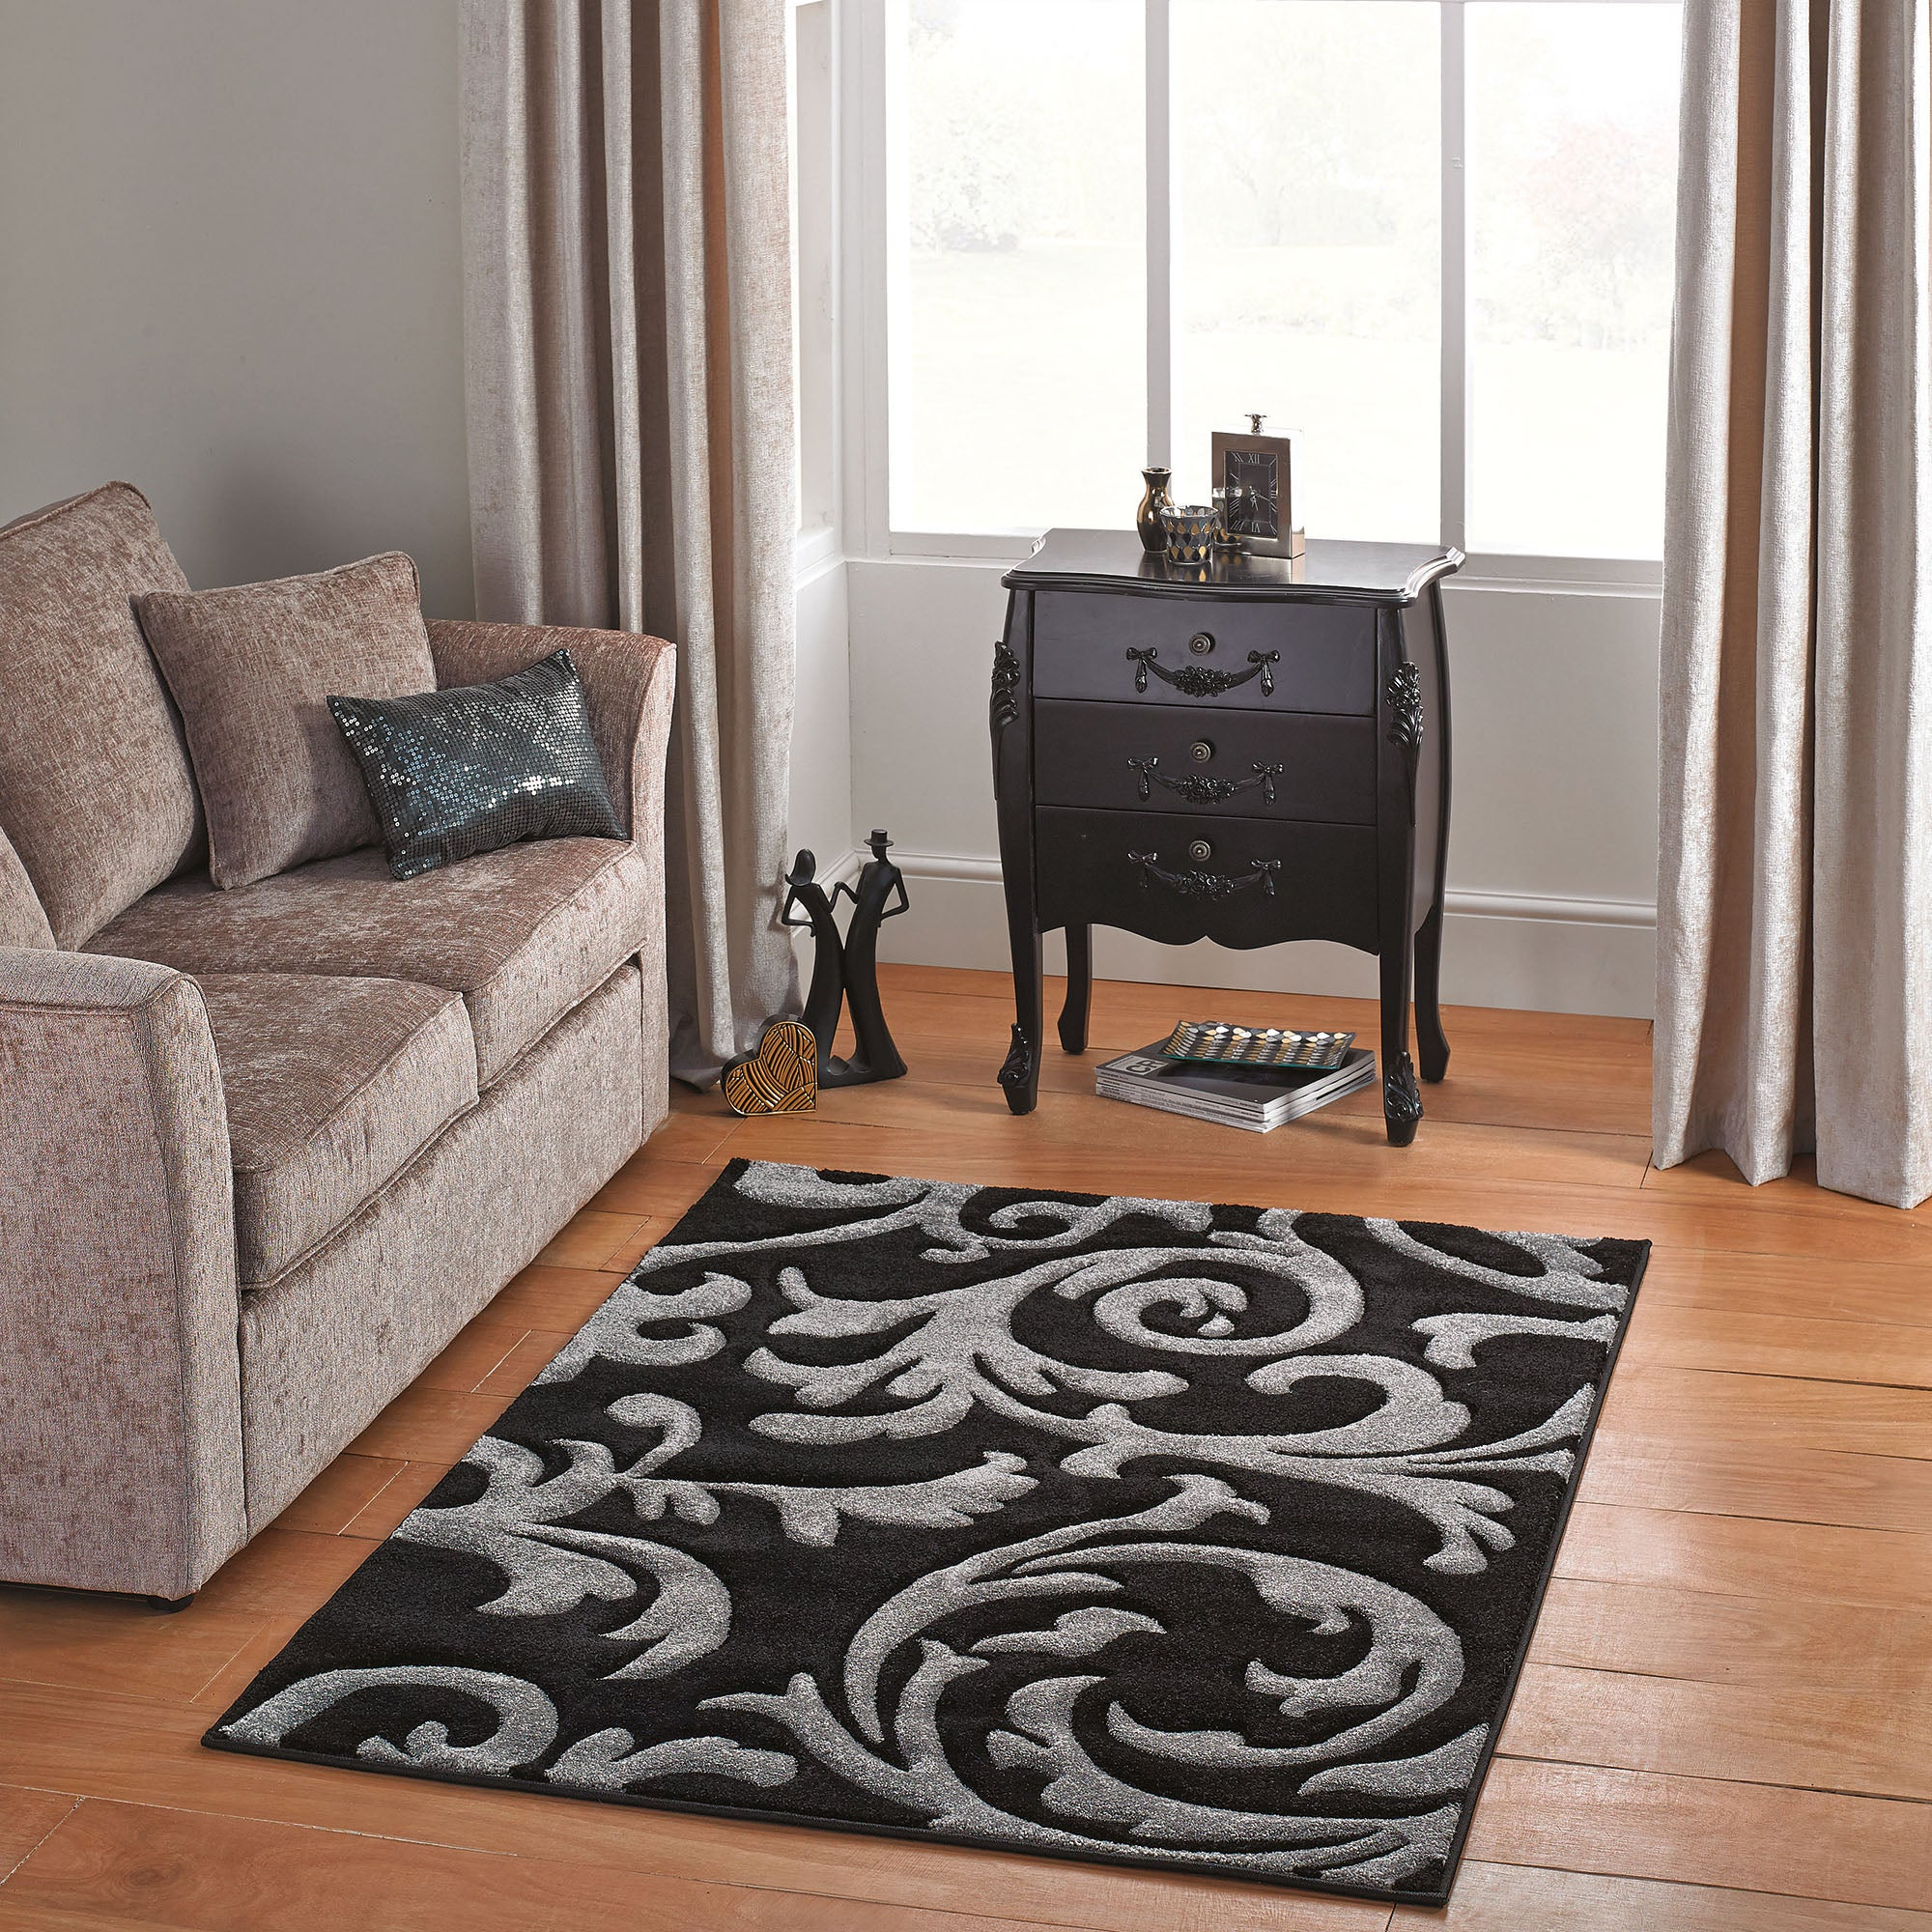 Black Reflection Rug